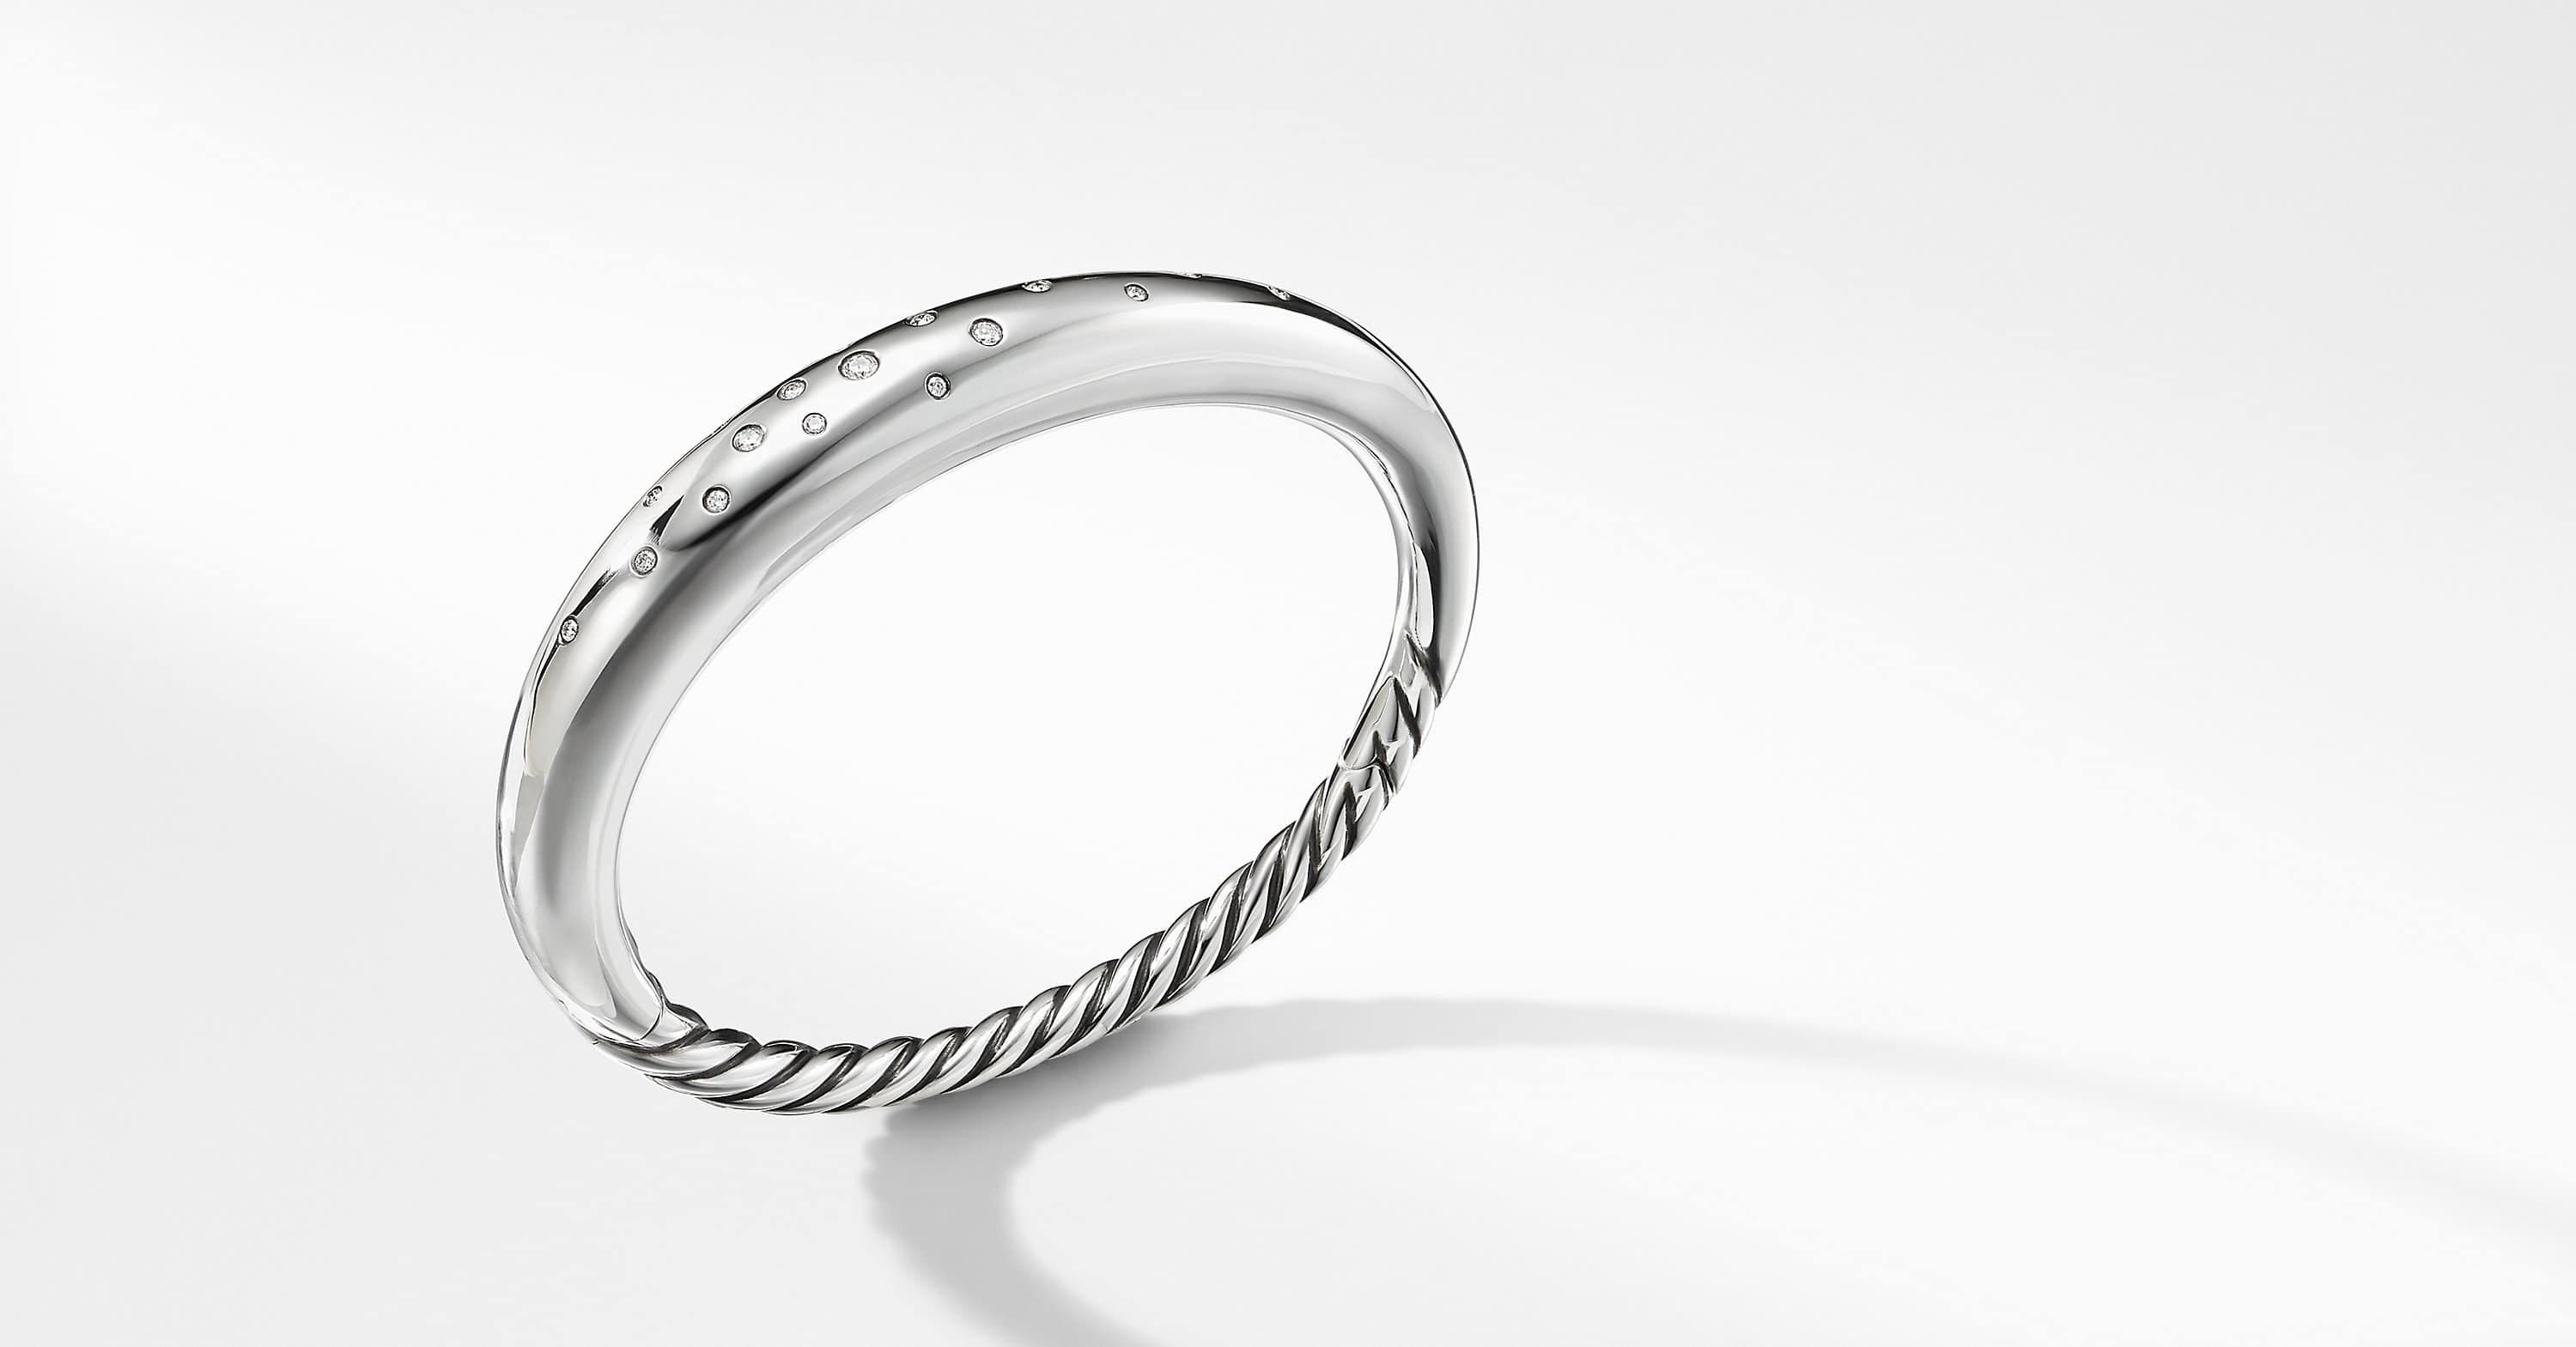 Pure Form Smooth Bracelet with Diamonds, 9.5mm